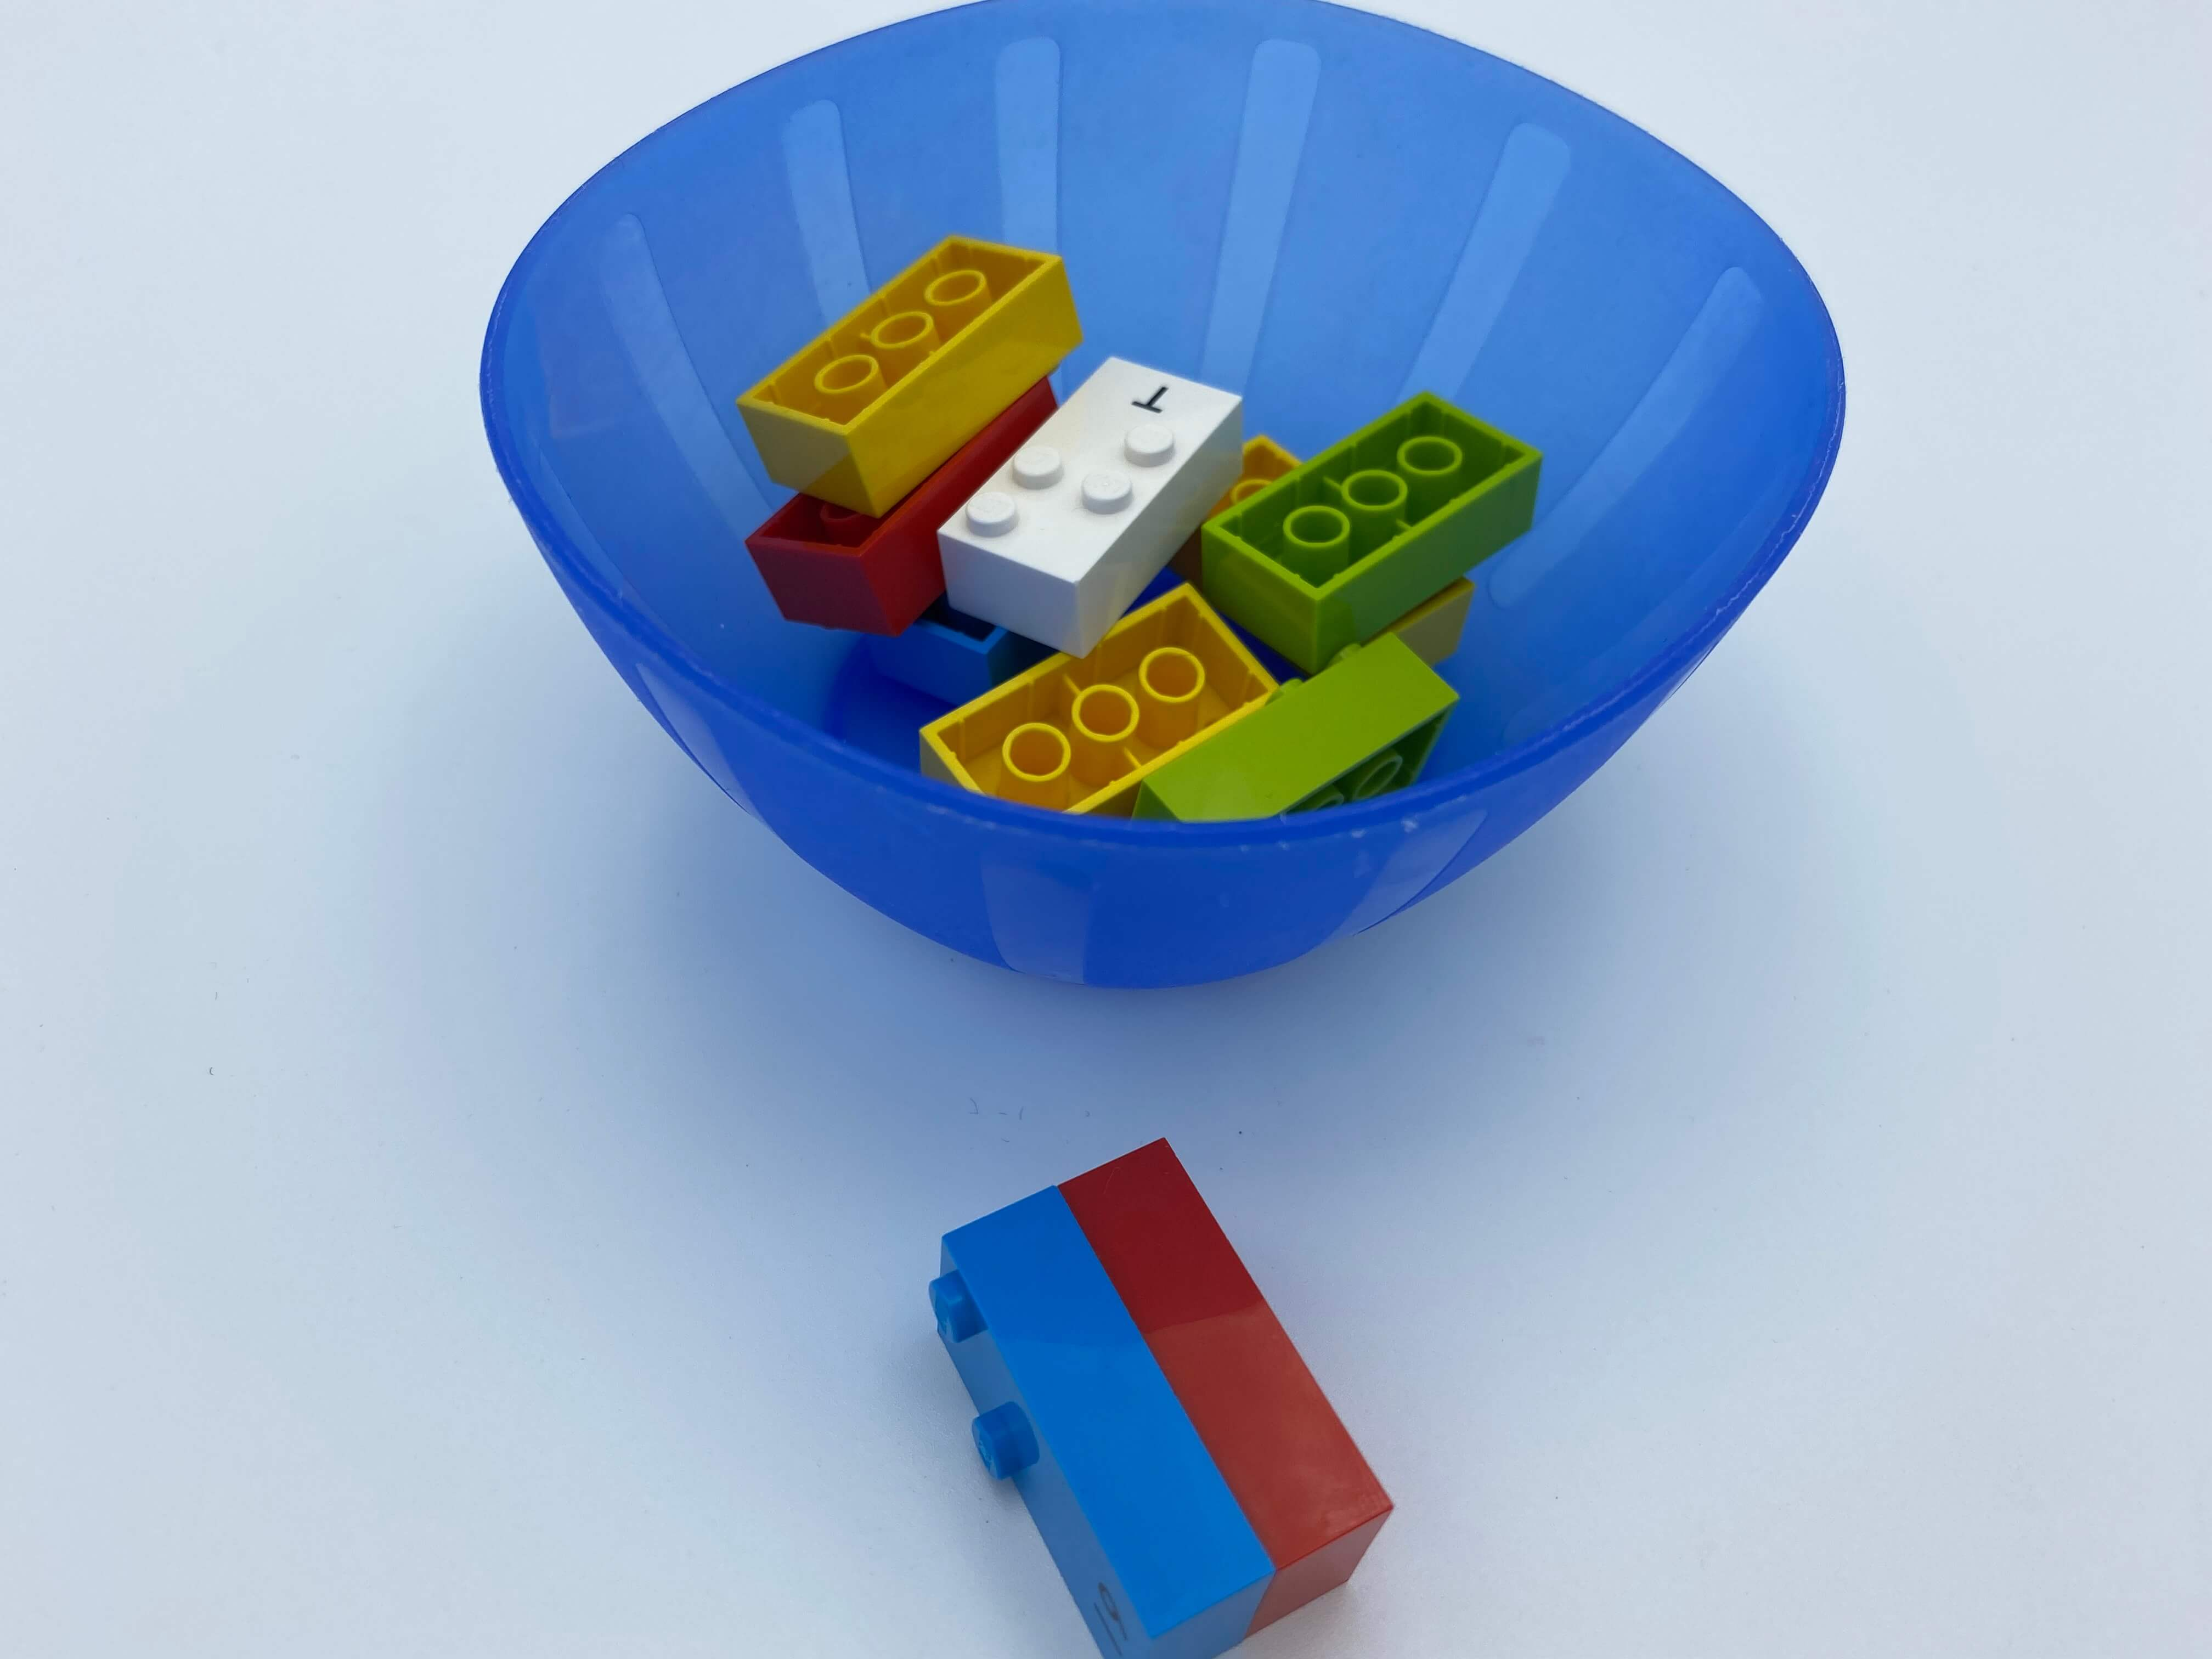 2 bricks attached, on a table, a bowl with 8 bricks.